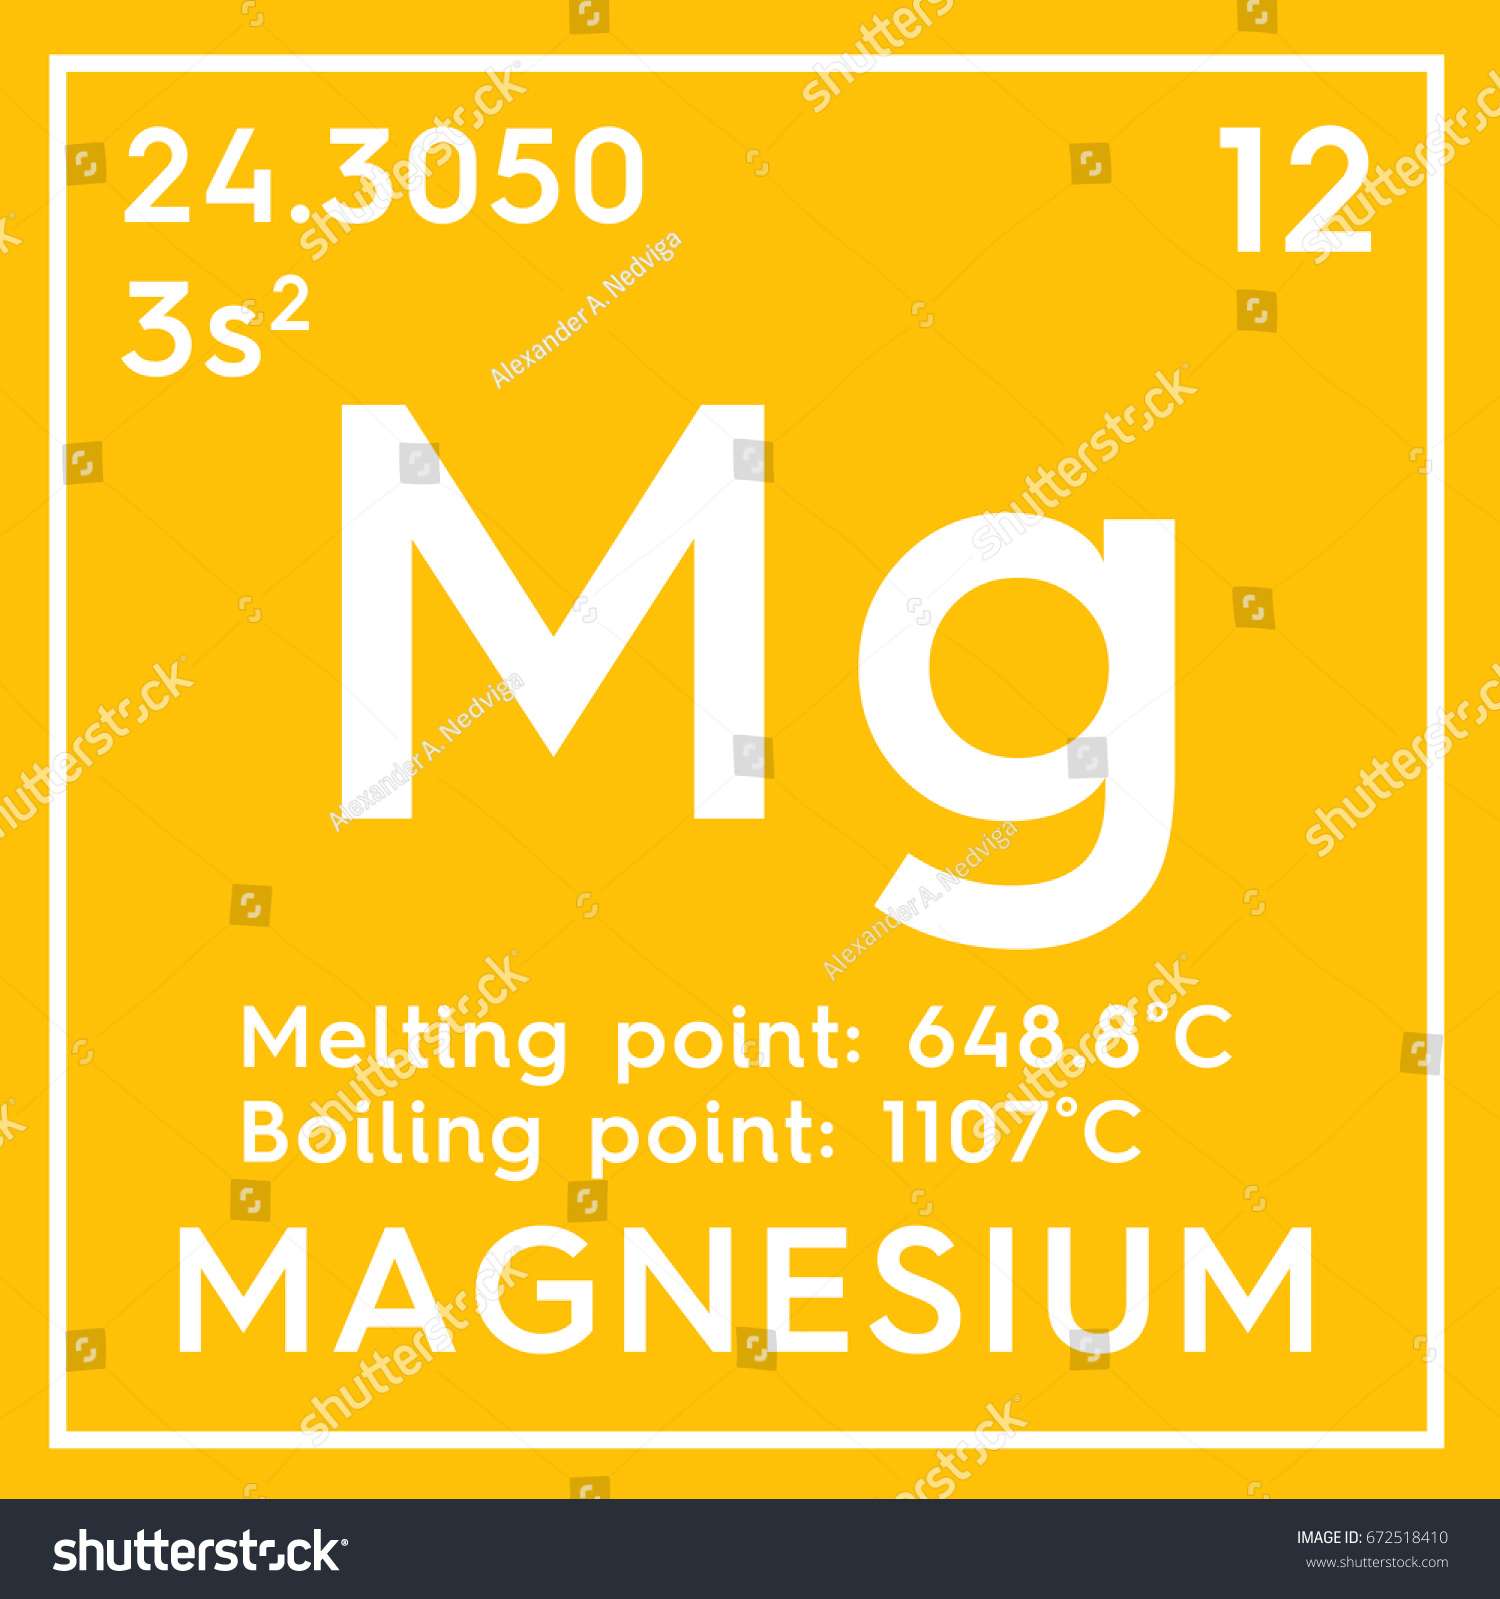 alkaline earth metals chemical element of mendeleevs periodic table in square cube